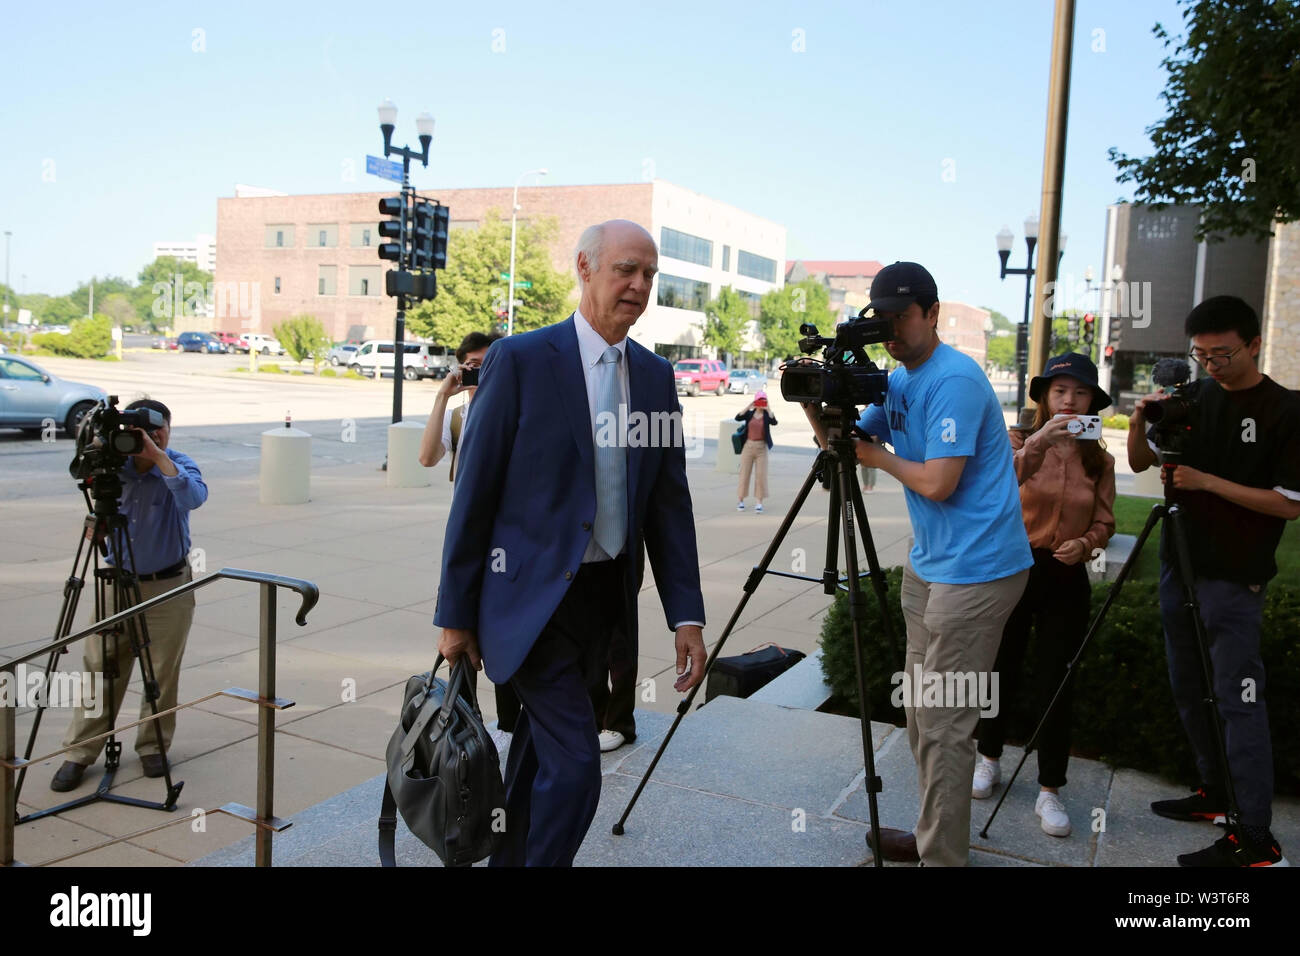 (190717) -- PEORIA (U.S.), July 17, 2019 (Xinhua) -- Robert Tucker, defense attorney for Brendt Christensen, heads to the federal courthouse building in Peoria, Illinois, the United States, on July 17, 2019. After a U.S. judge concludes all the evidence from the sentencing phase in the Chinese scholar slaying trial Tuesday, closing arguments from both prosecutors and the defense started here Wednesday morning. The closing arguments of the sentencing phase for Brendt Christensen who was found guilty of killing Zhang Yingying in 2017 took place around 9 a.m.(1400 GMT) at a federal court of Peori - Stock Image